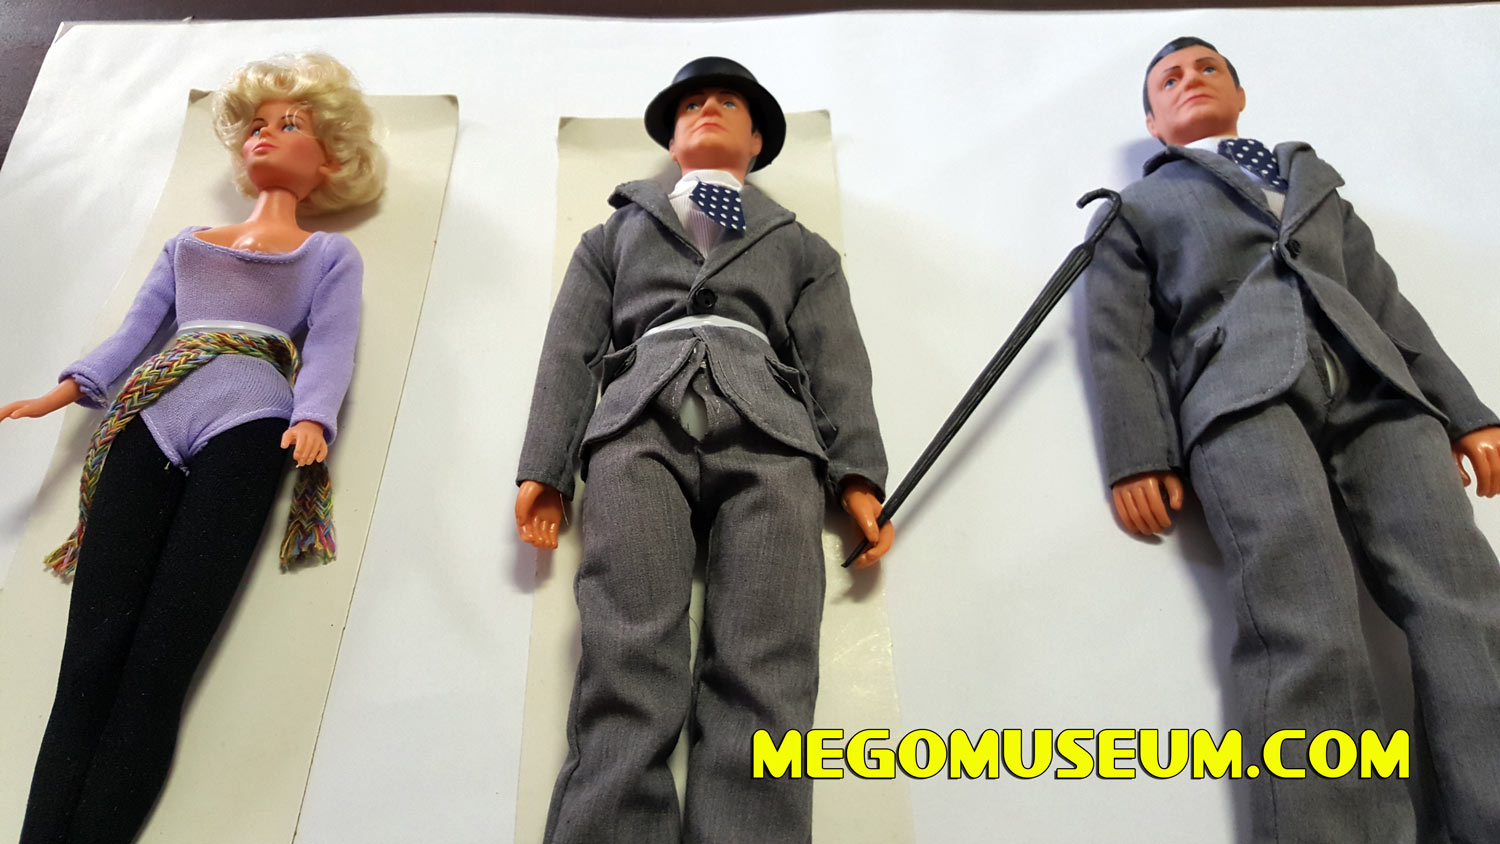 New Avengers John Steed Action Figure by Fun World (South Africa) Mego Museum